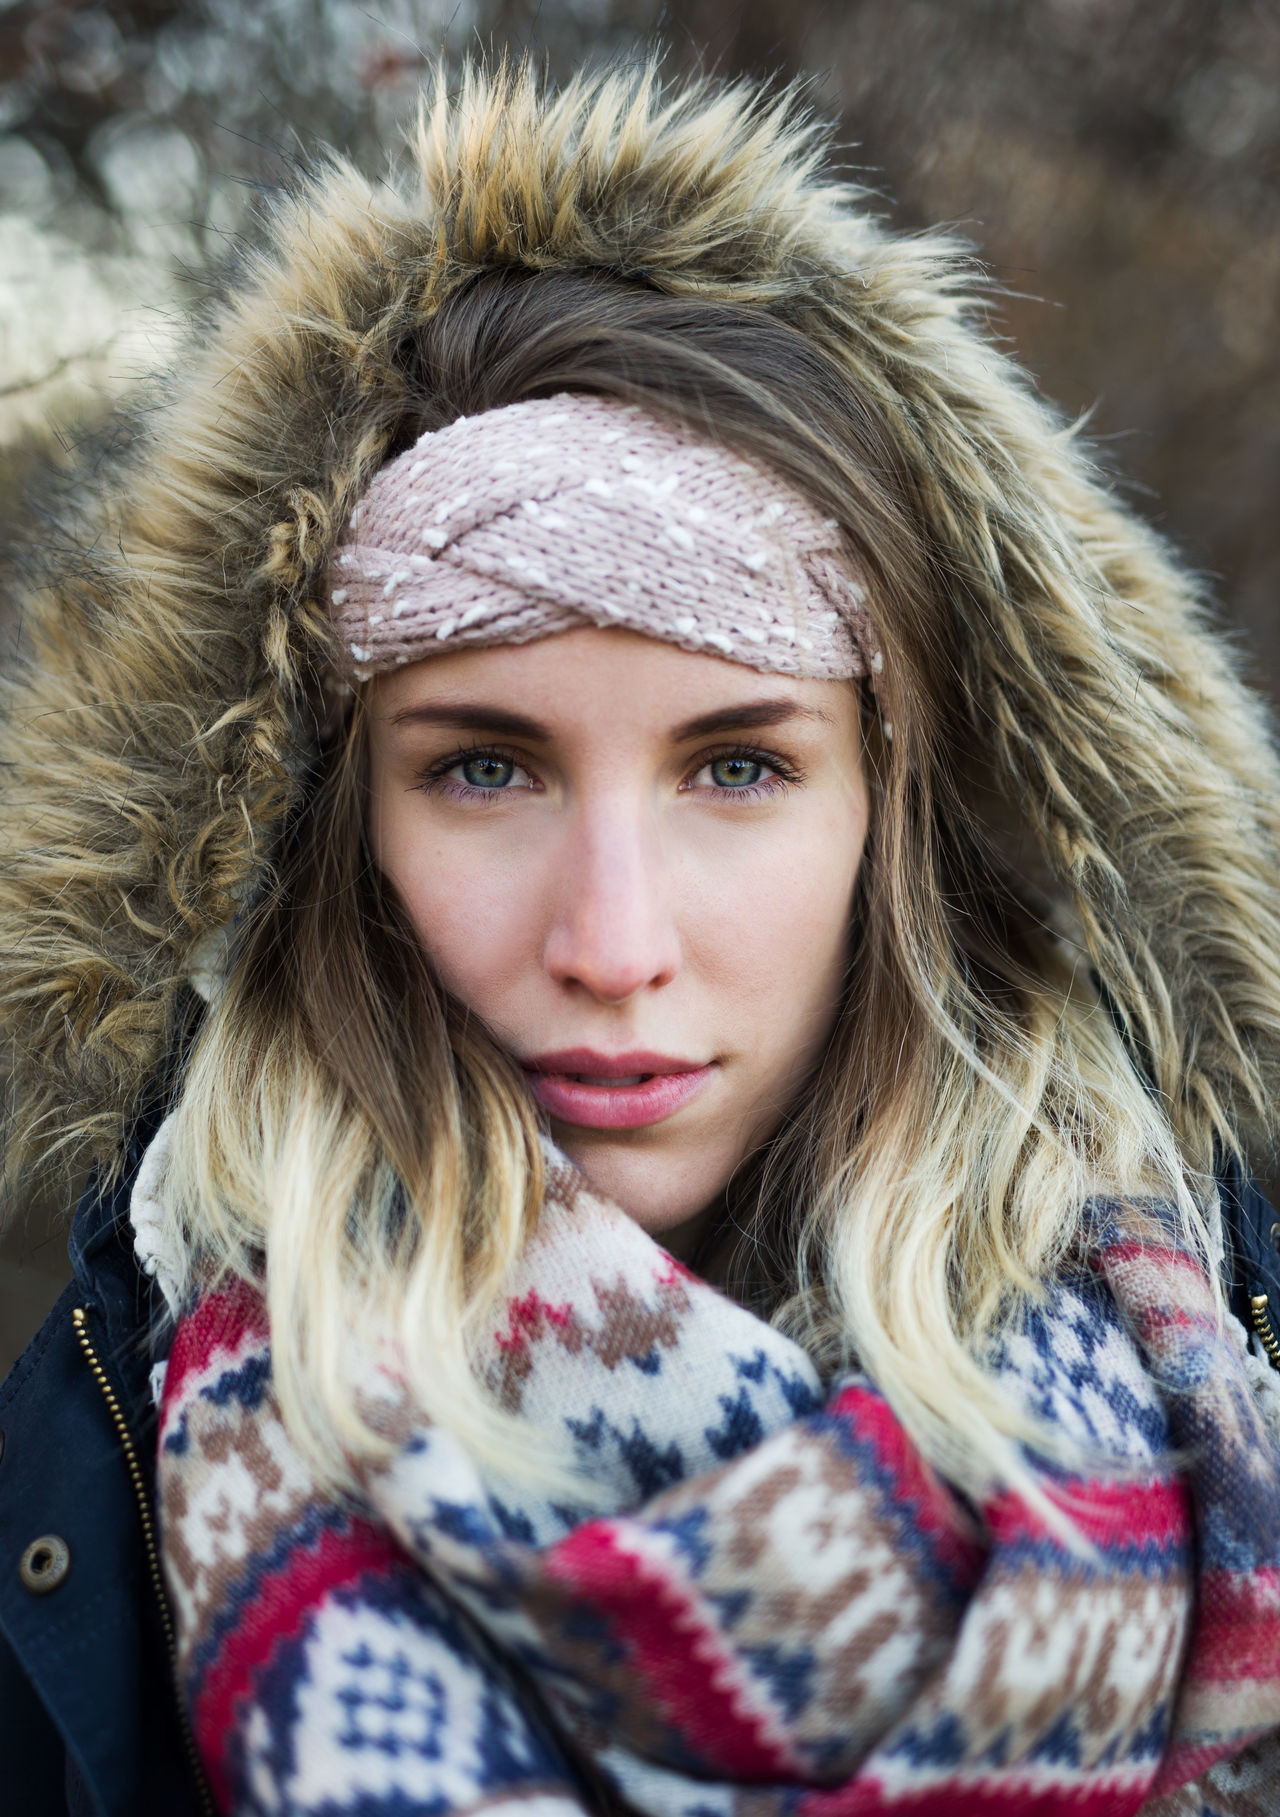 Beautiful Beautiful Woman Beauty Blond Hair Cold Cold Days Cold Temperature Portrait Portrait Of A Woman Scarf Warm Clothing Winter Winter Winter Fashion Wintertime Young Women